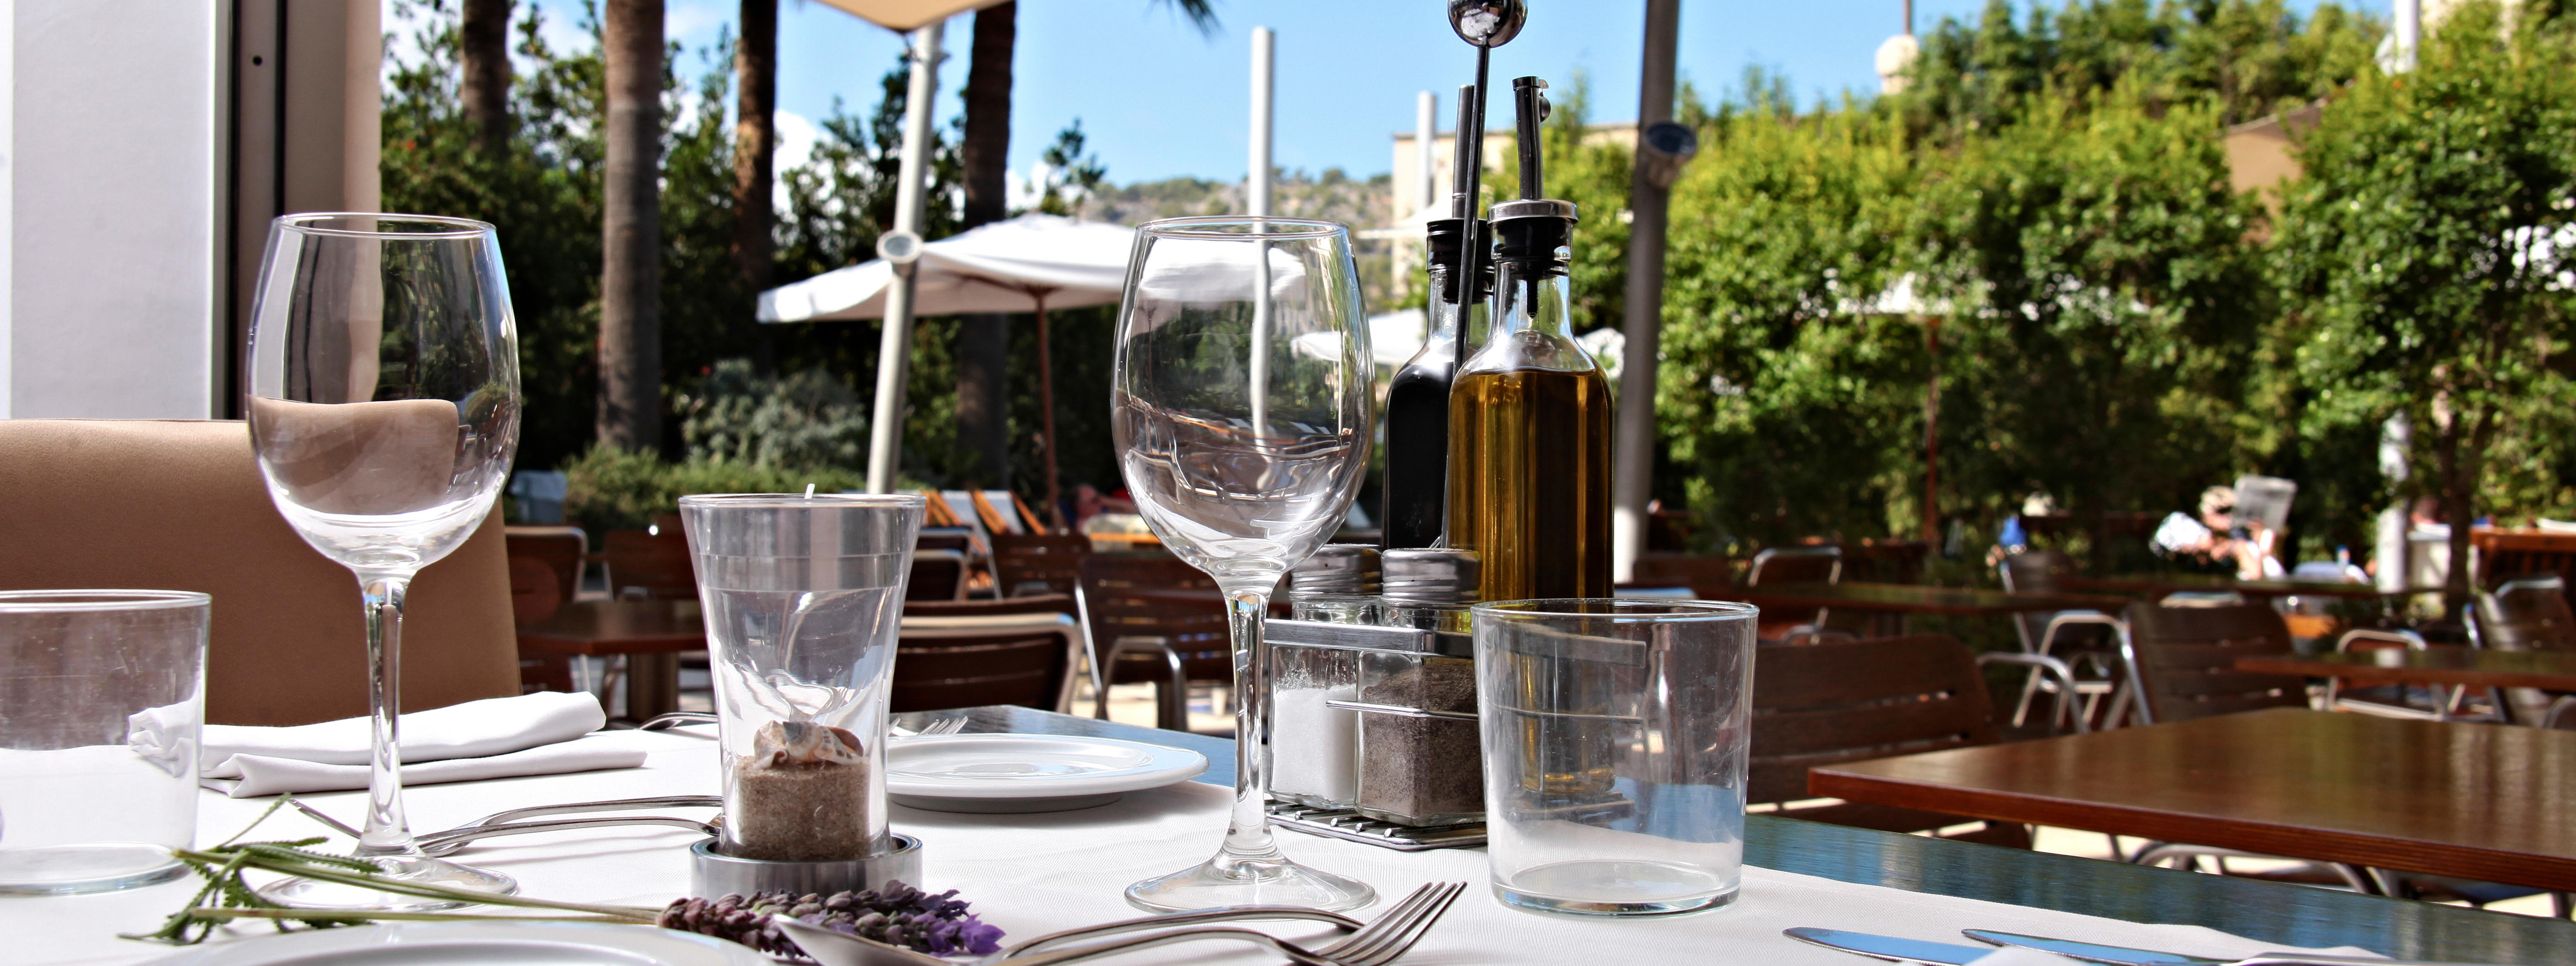 Restaurant at Aimia Hotel in Port de Sóller, Majorca